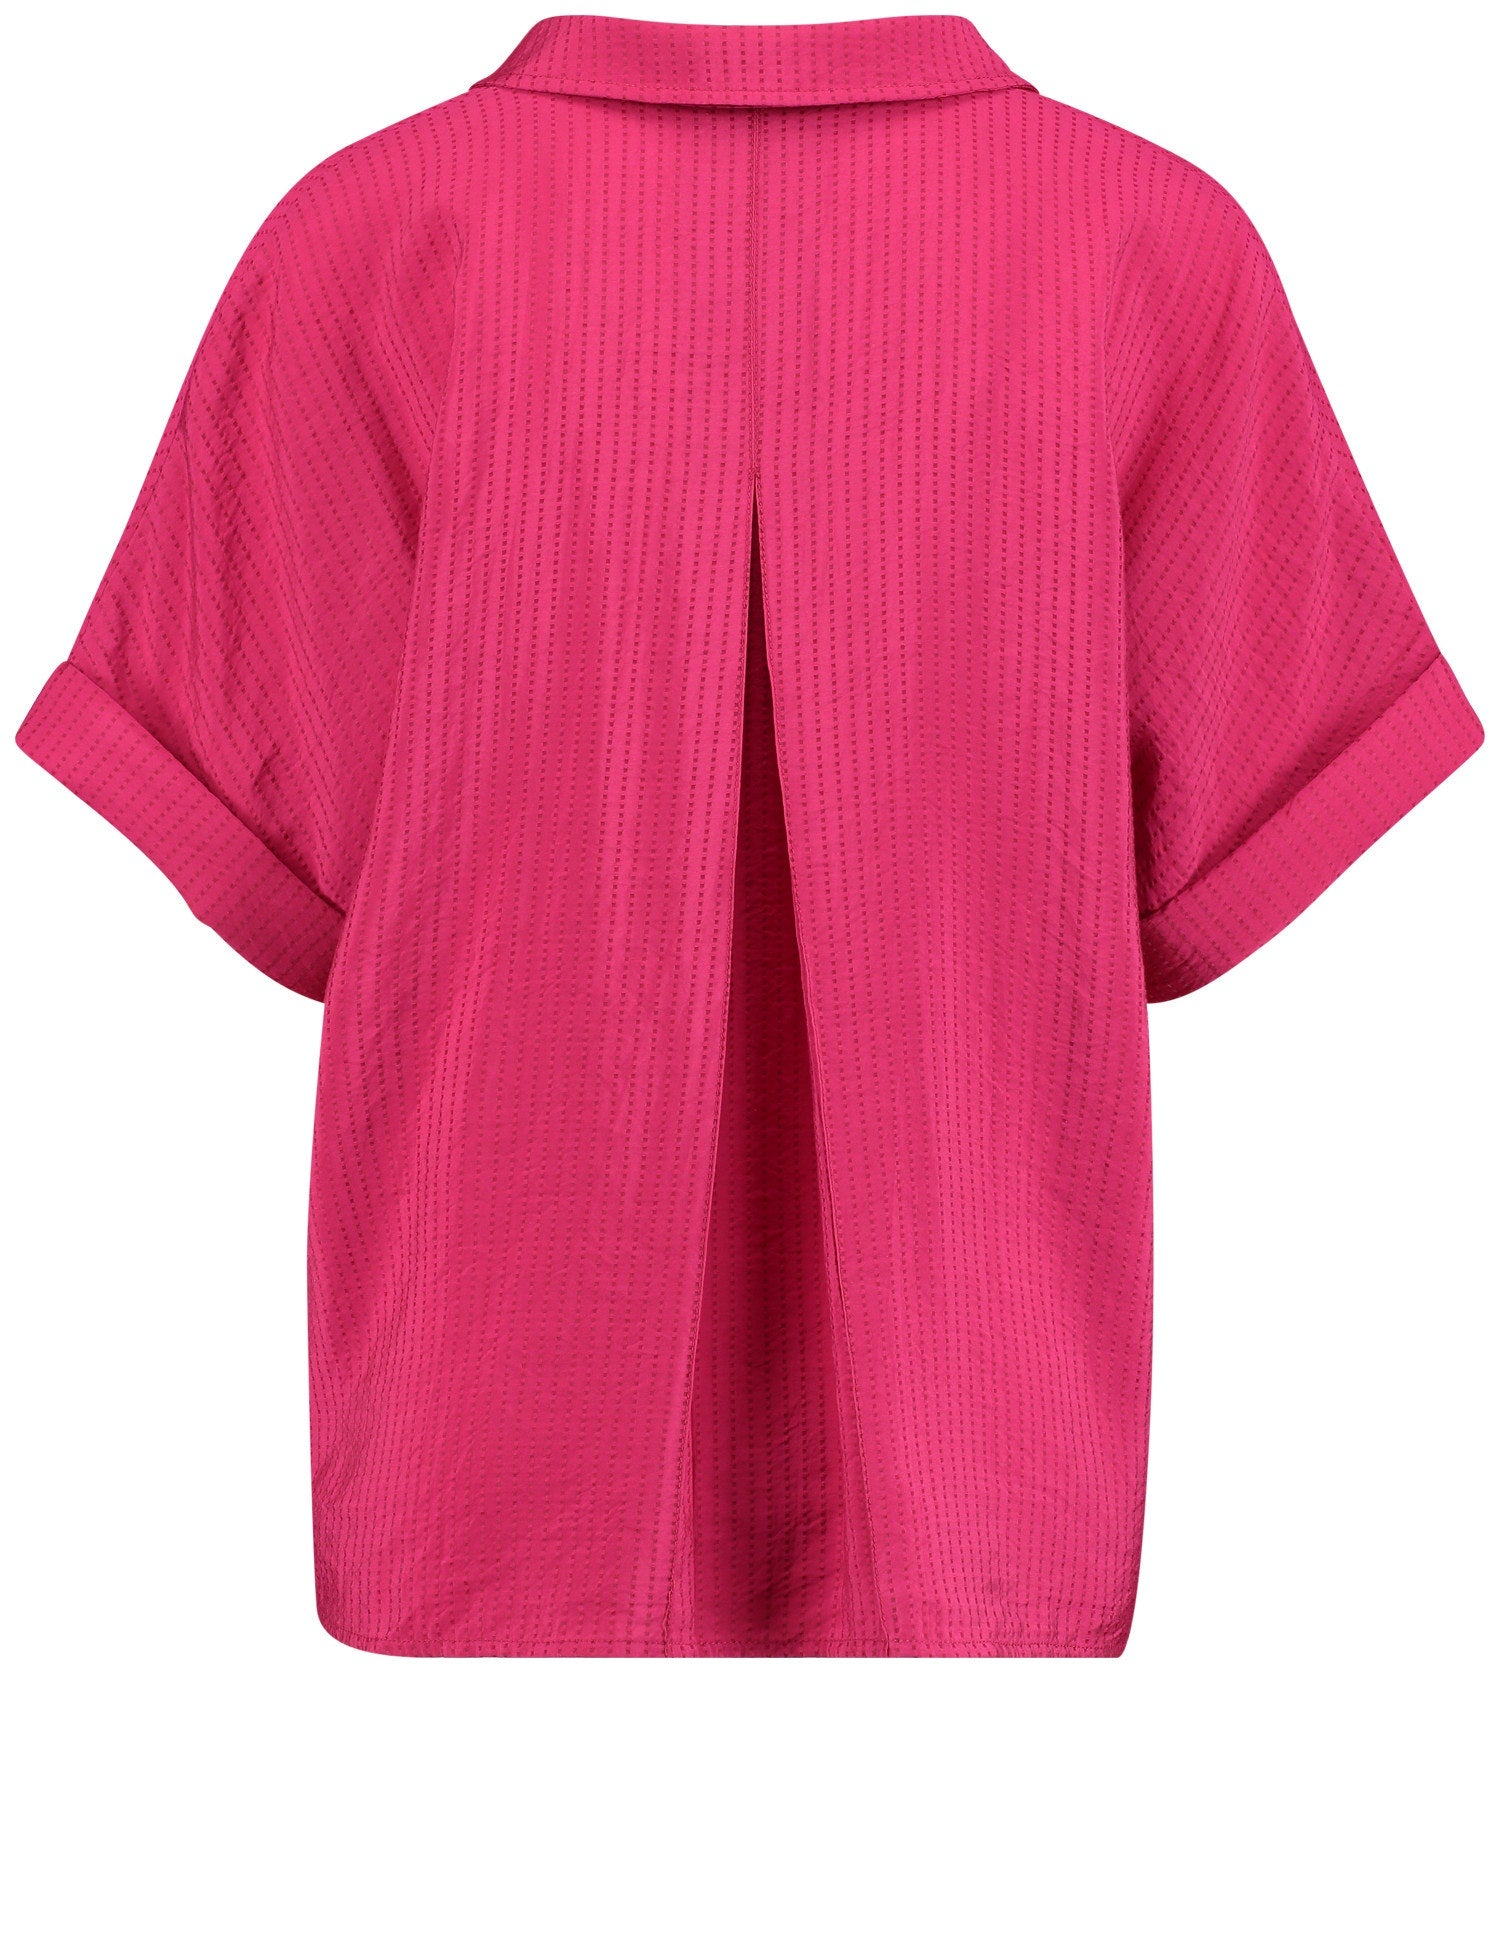 Gerry Weber Textured Blouse 360046